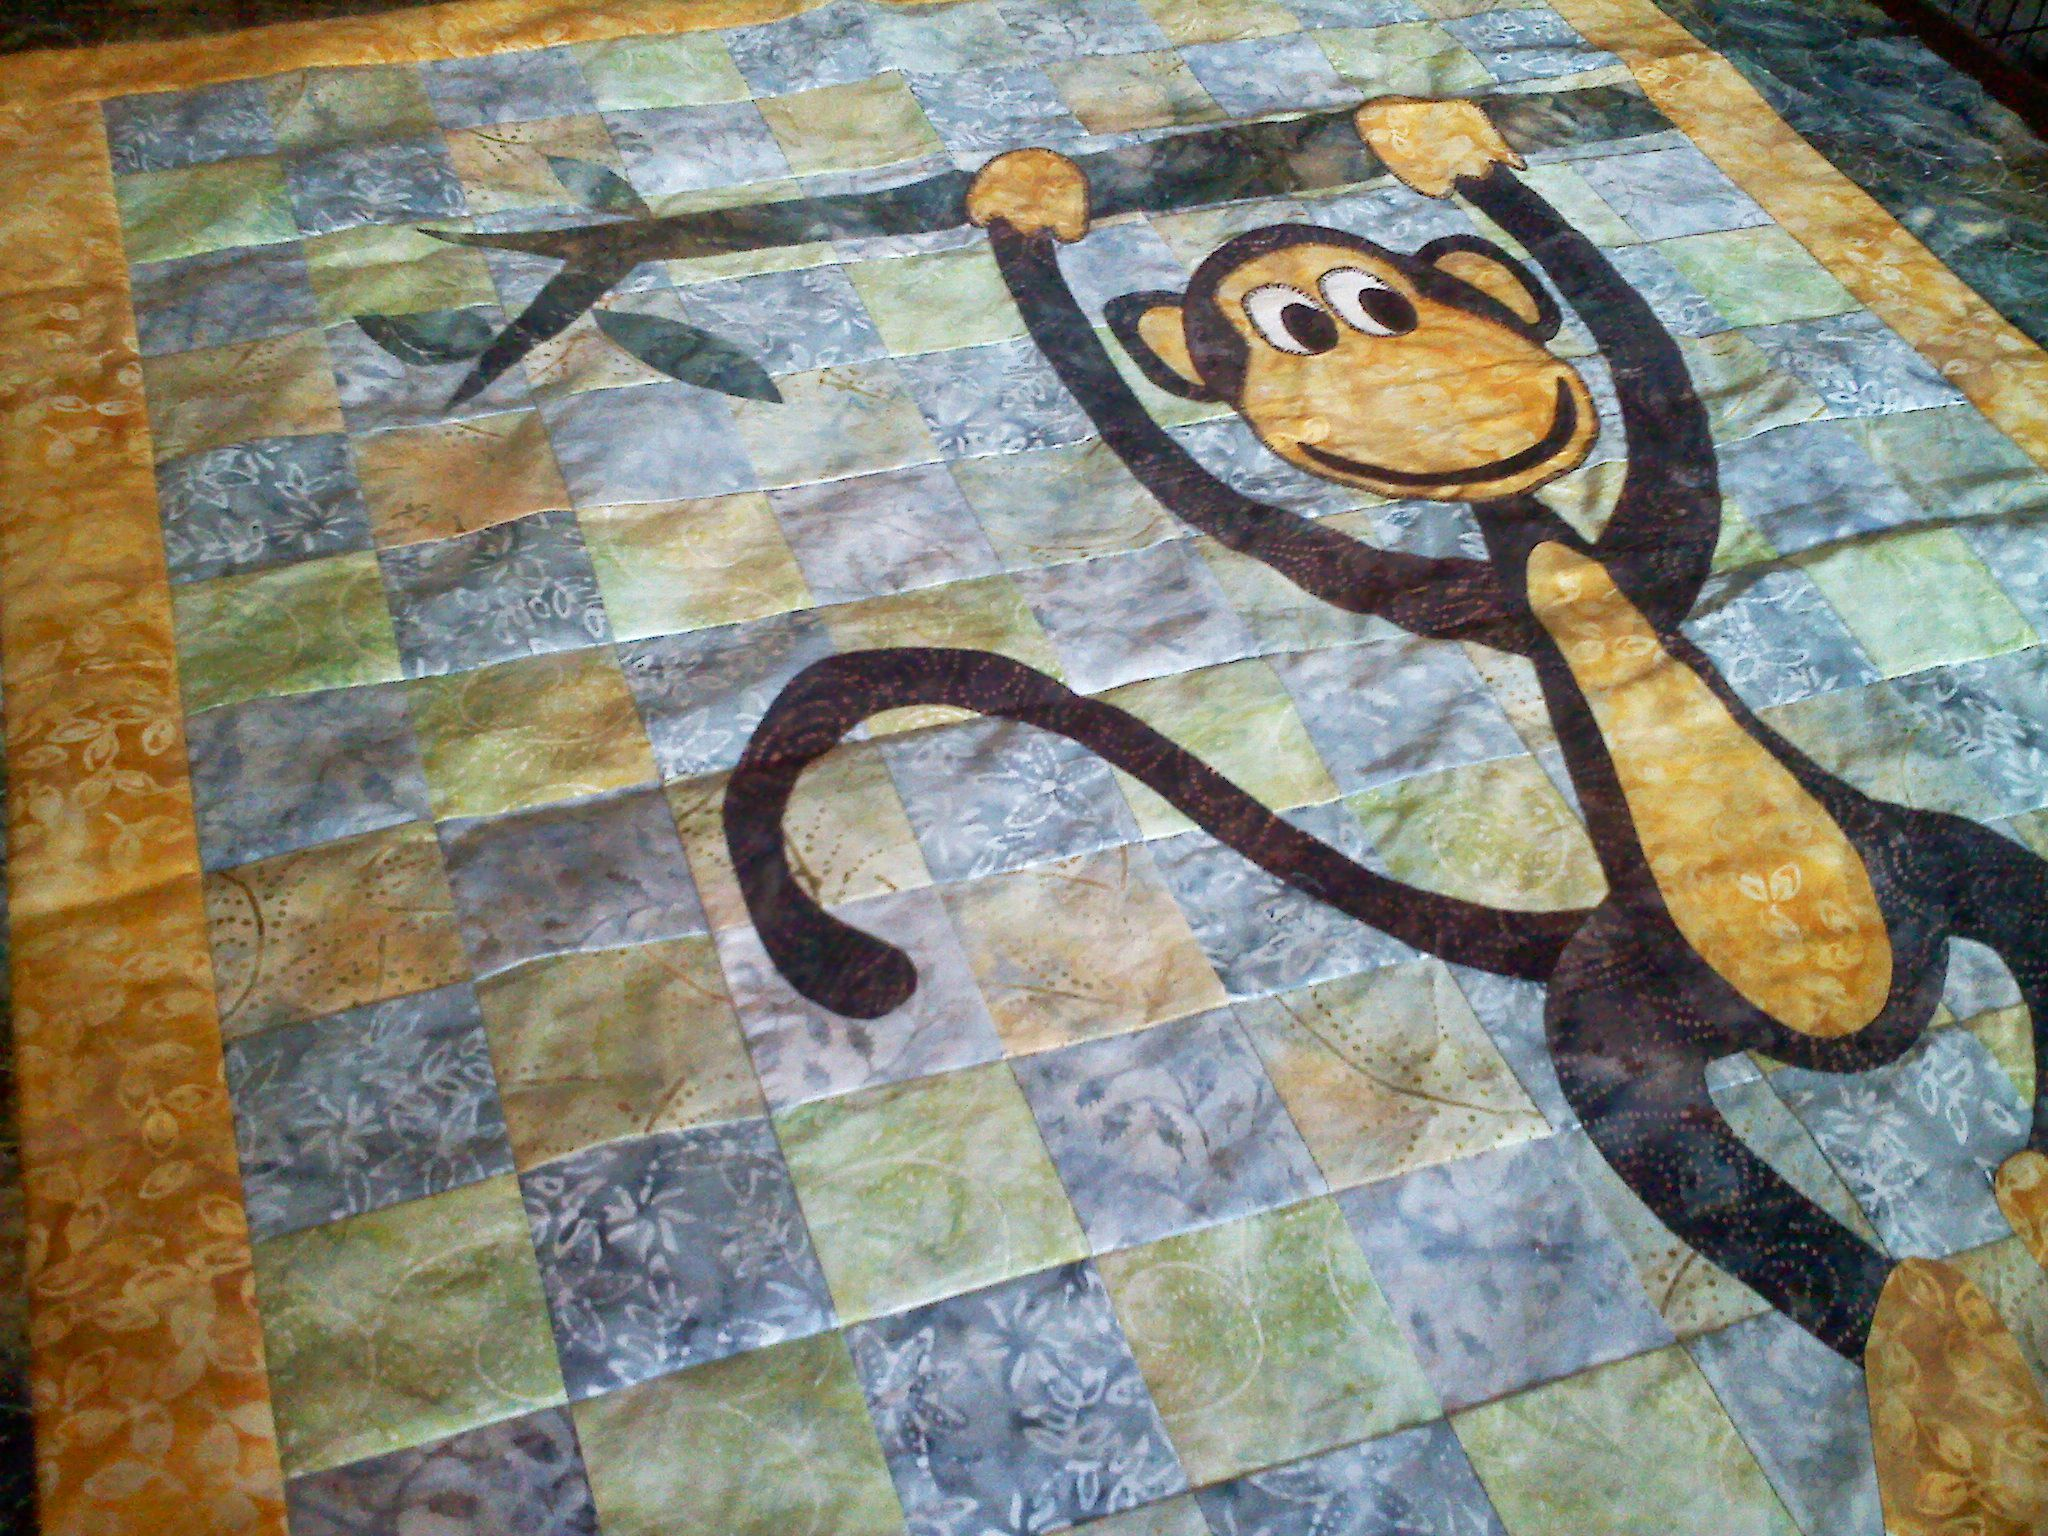 free patterns for baby quilts   The monkey baby quilt is taking ... : monkey baby quilt pattern - Adamdwight.com